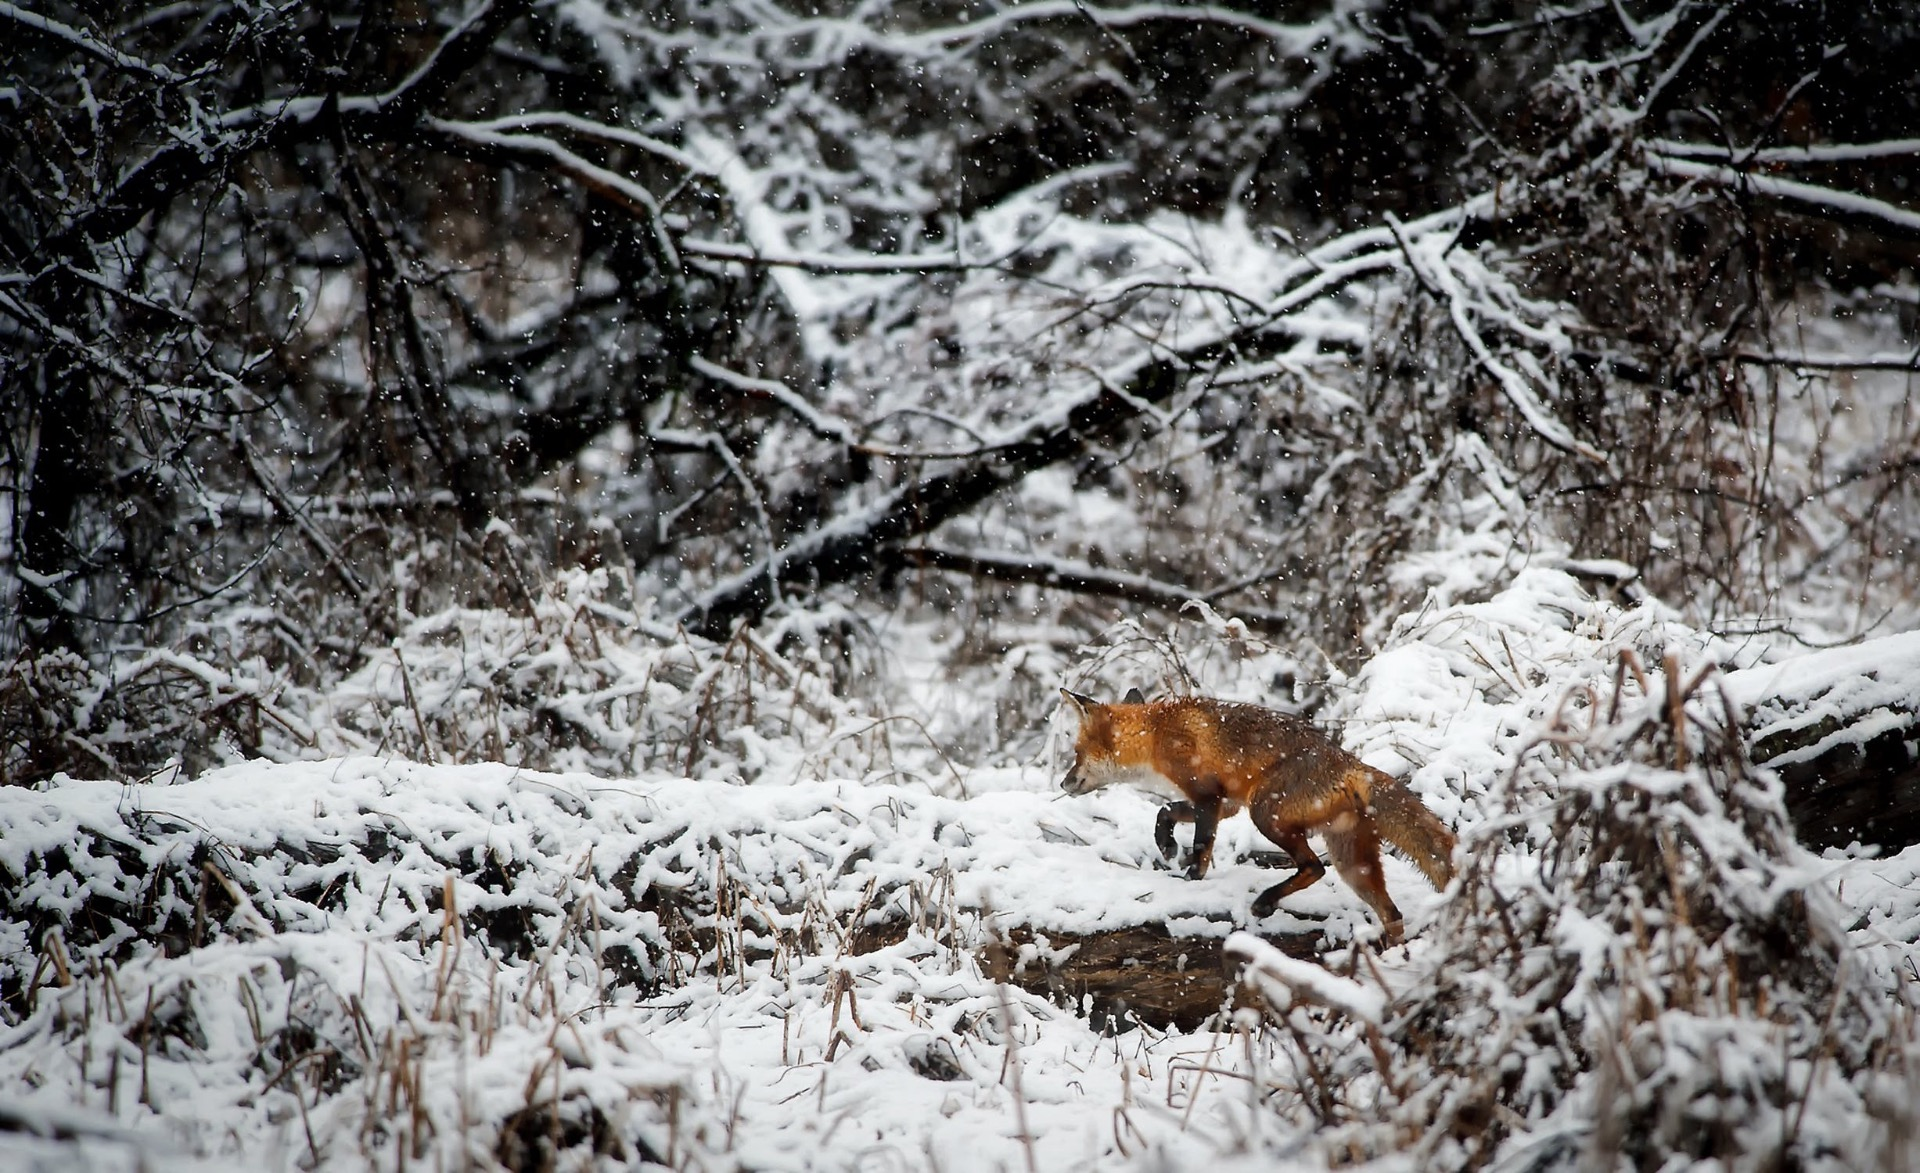 A fox hunting in the snow in winter